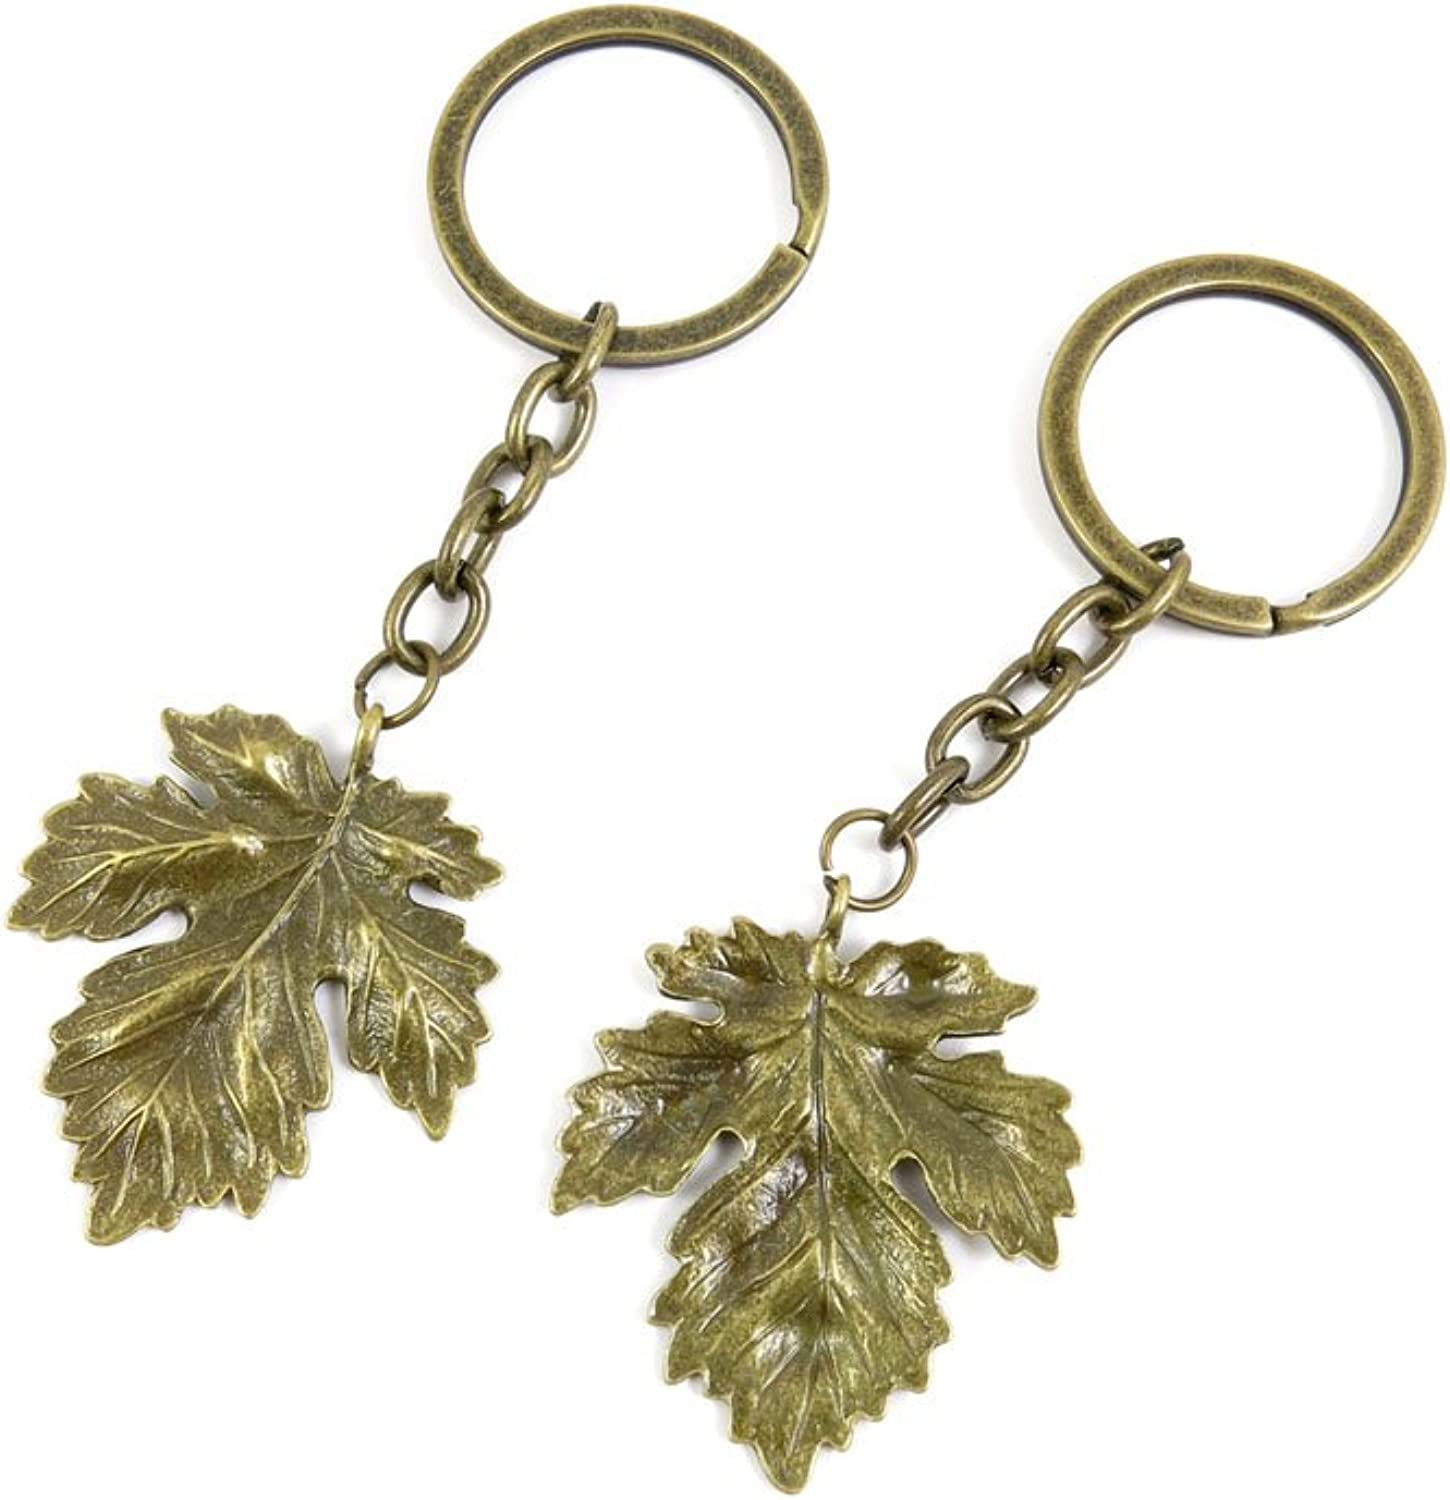 100 PCS Keyrings Keychains Key Ring Chains Tags Jewelry Findings Clasps Buckles Supplies G8EX6 Big Leaf